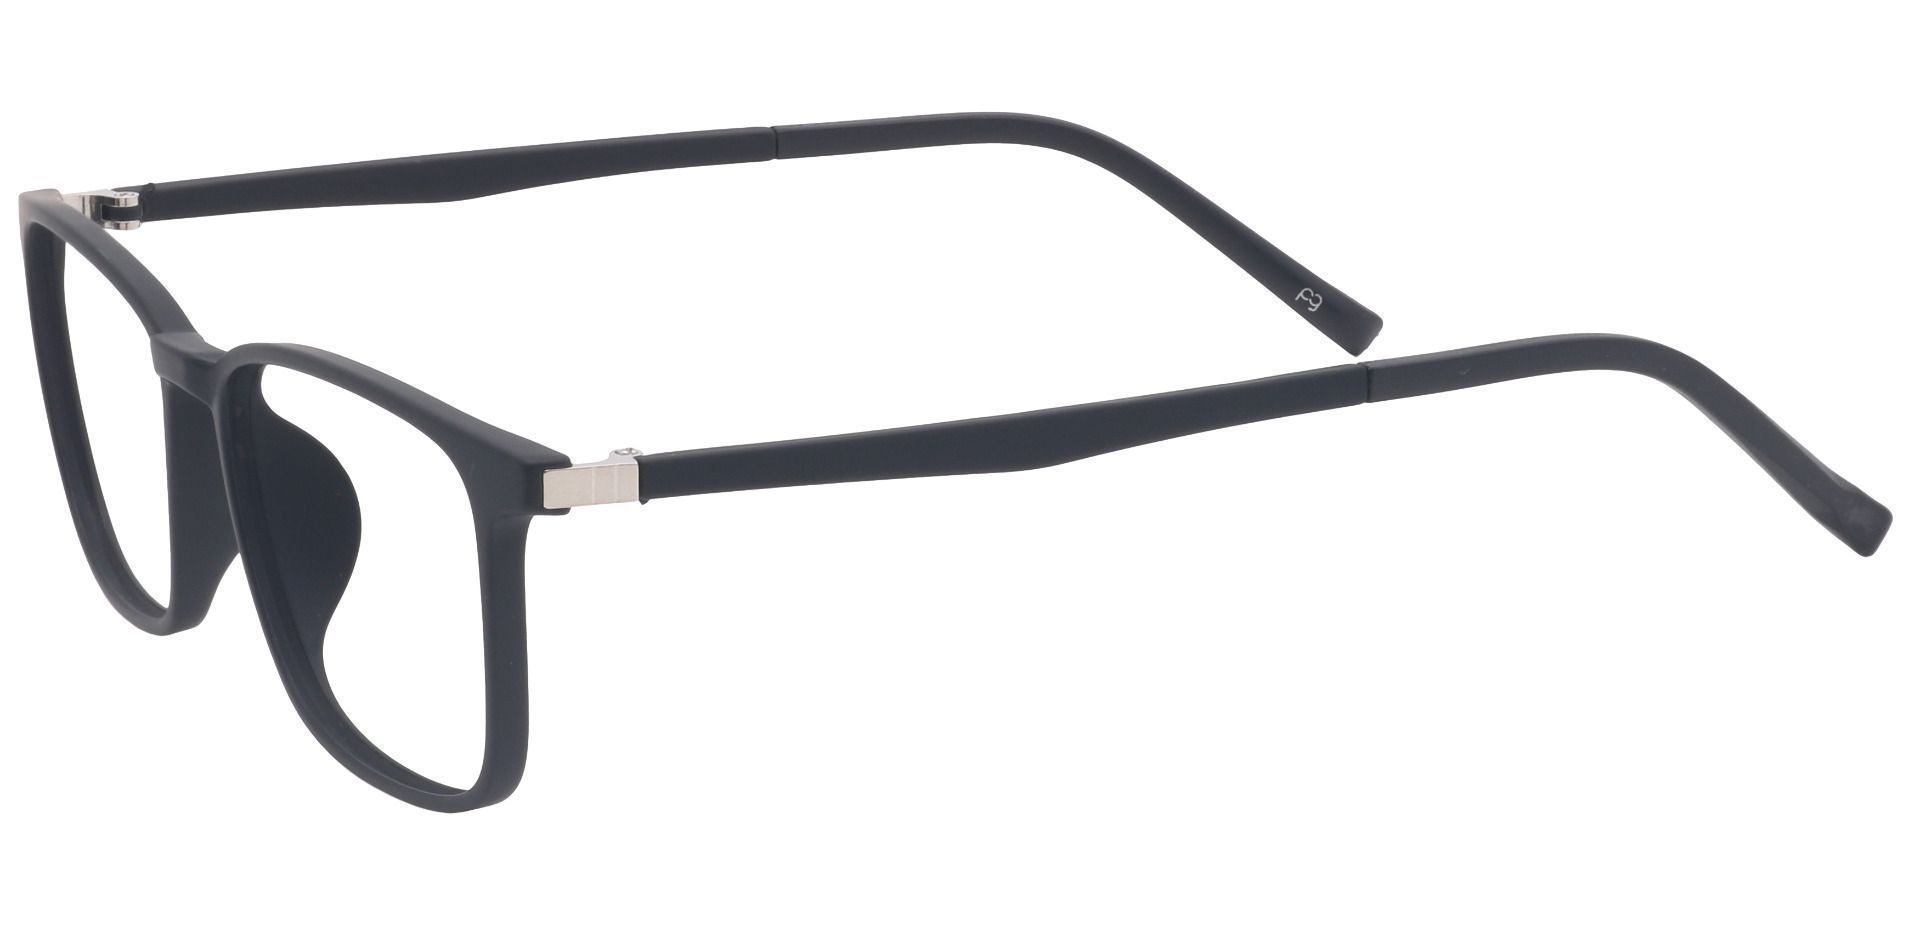 Cypress Rectangle Prescription Glasses - Black